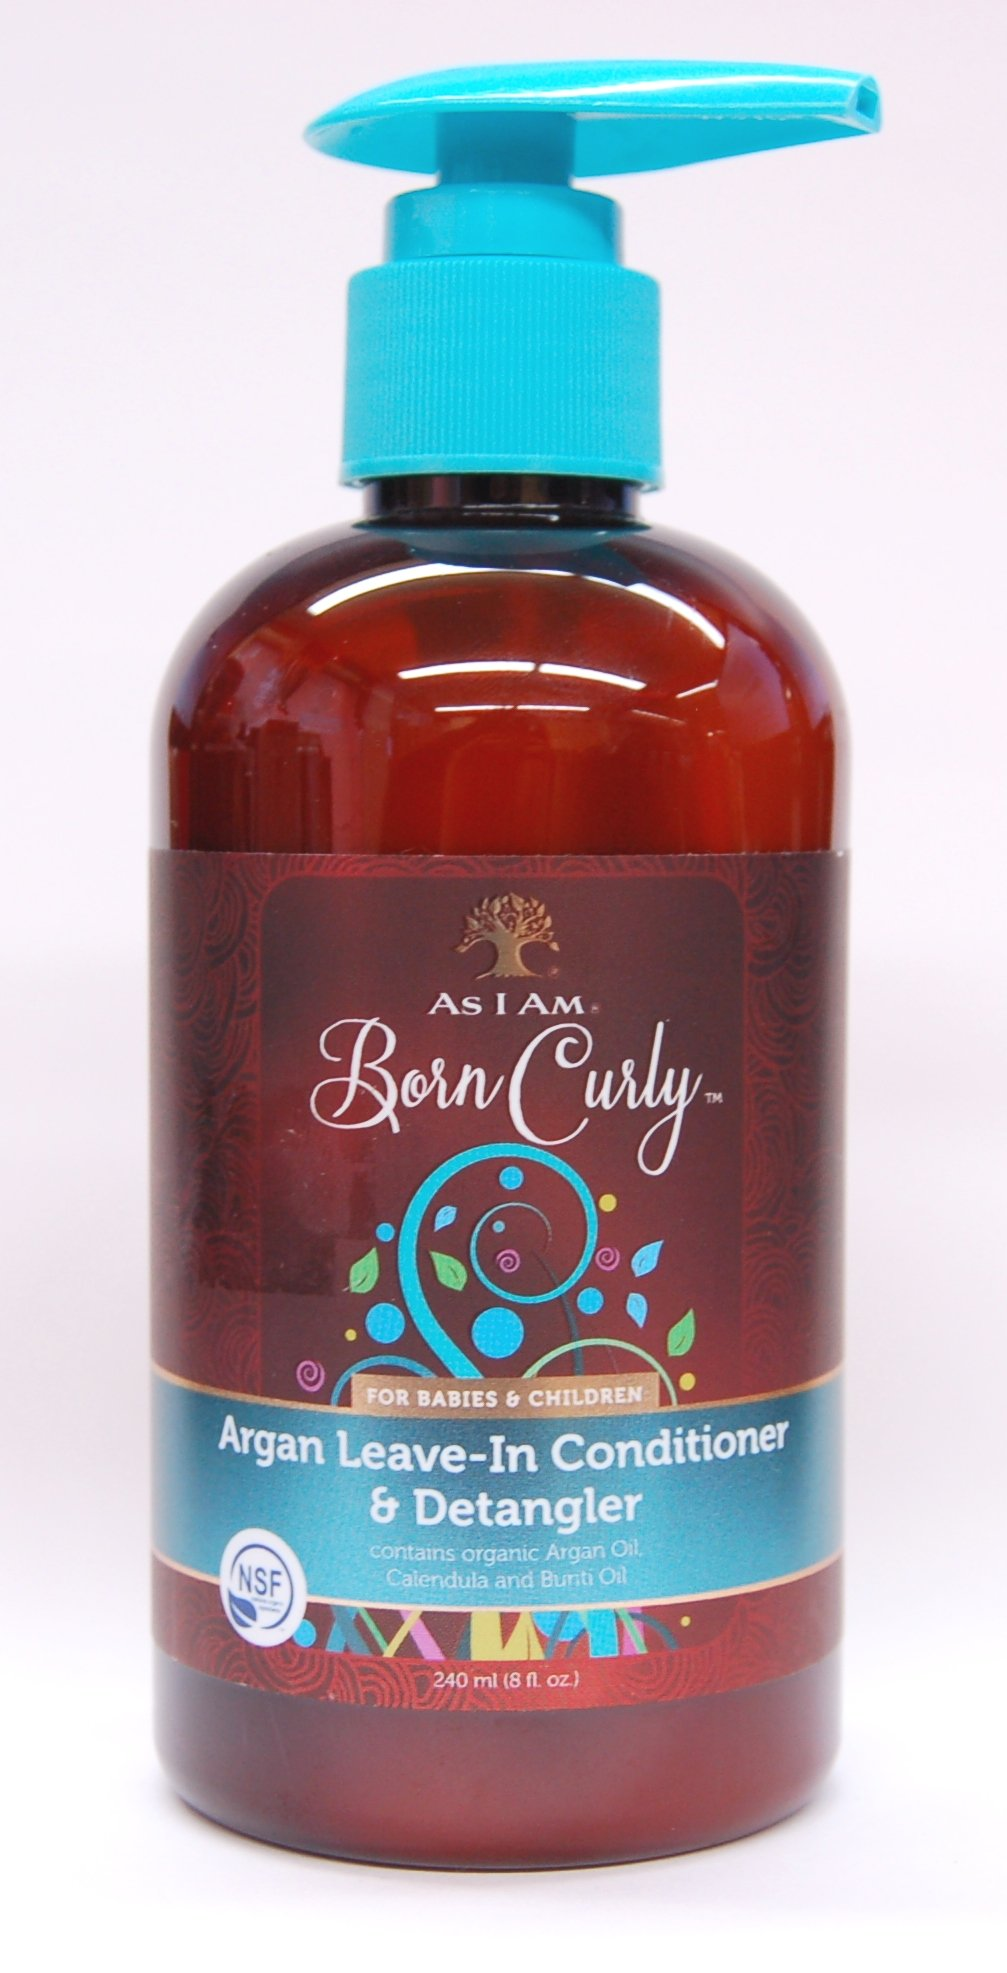 As I Am Born Curly Argan Organic Leave-In Conditioner & Detangler - 8oz